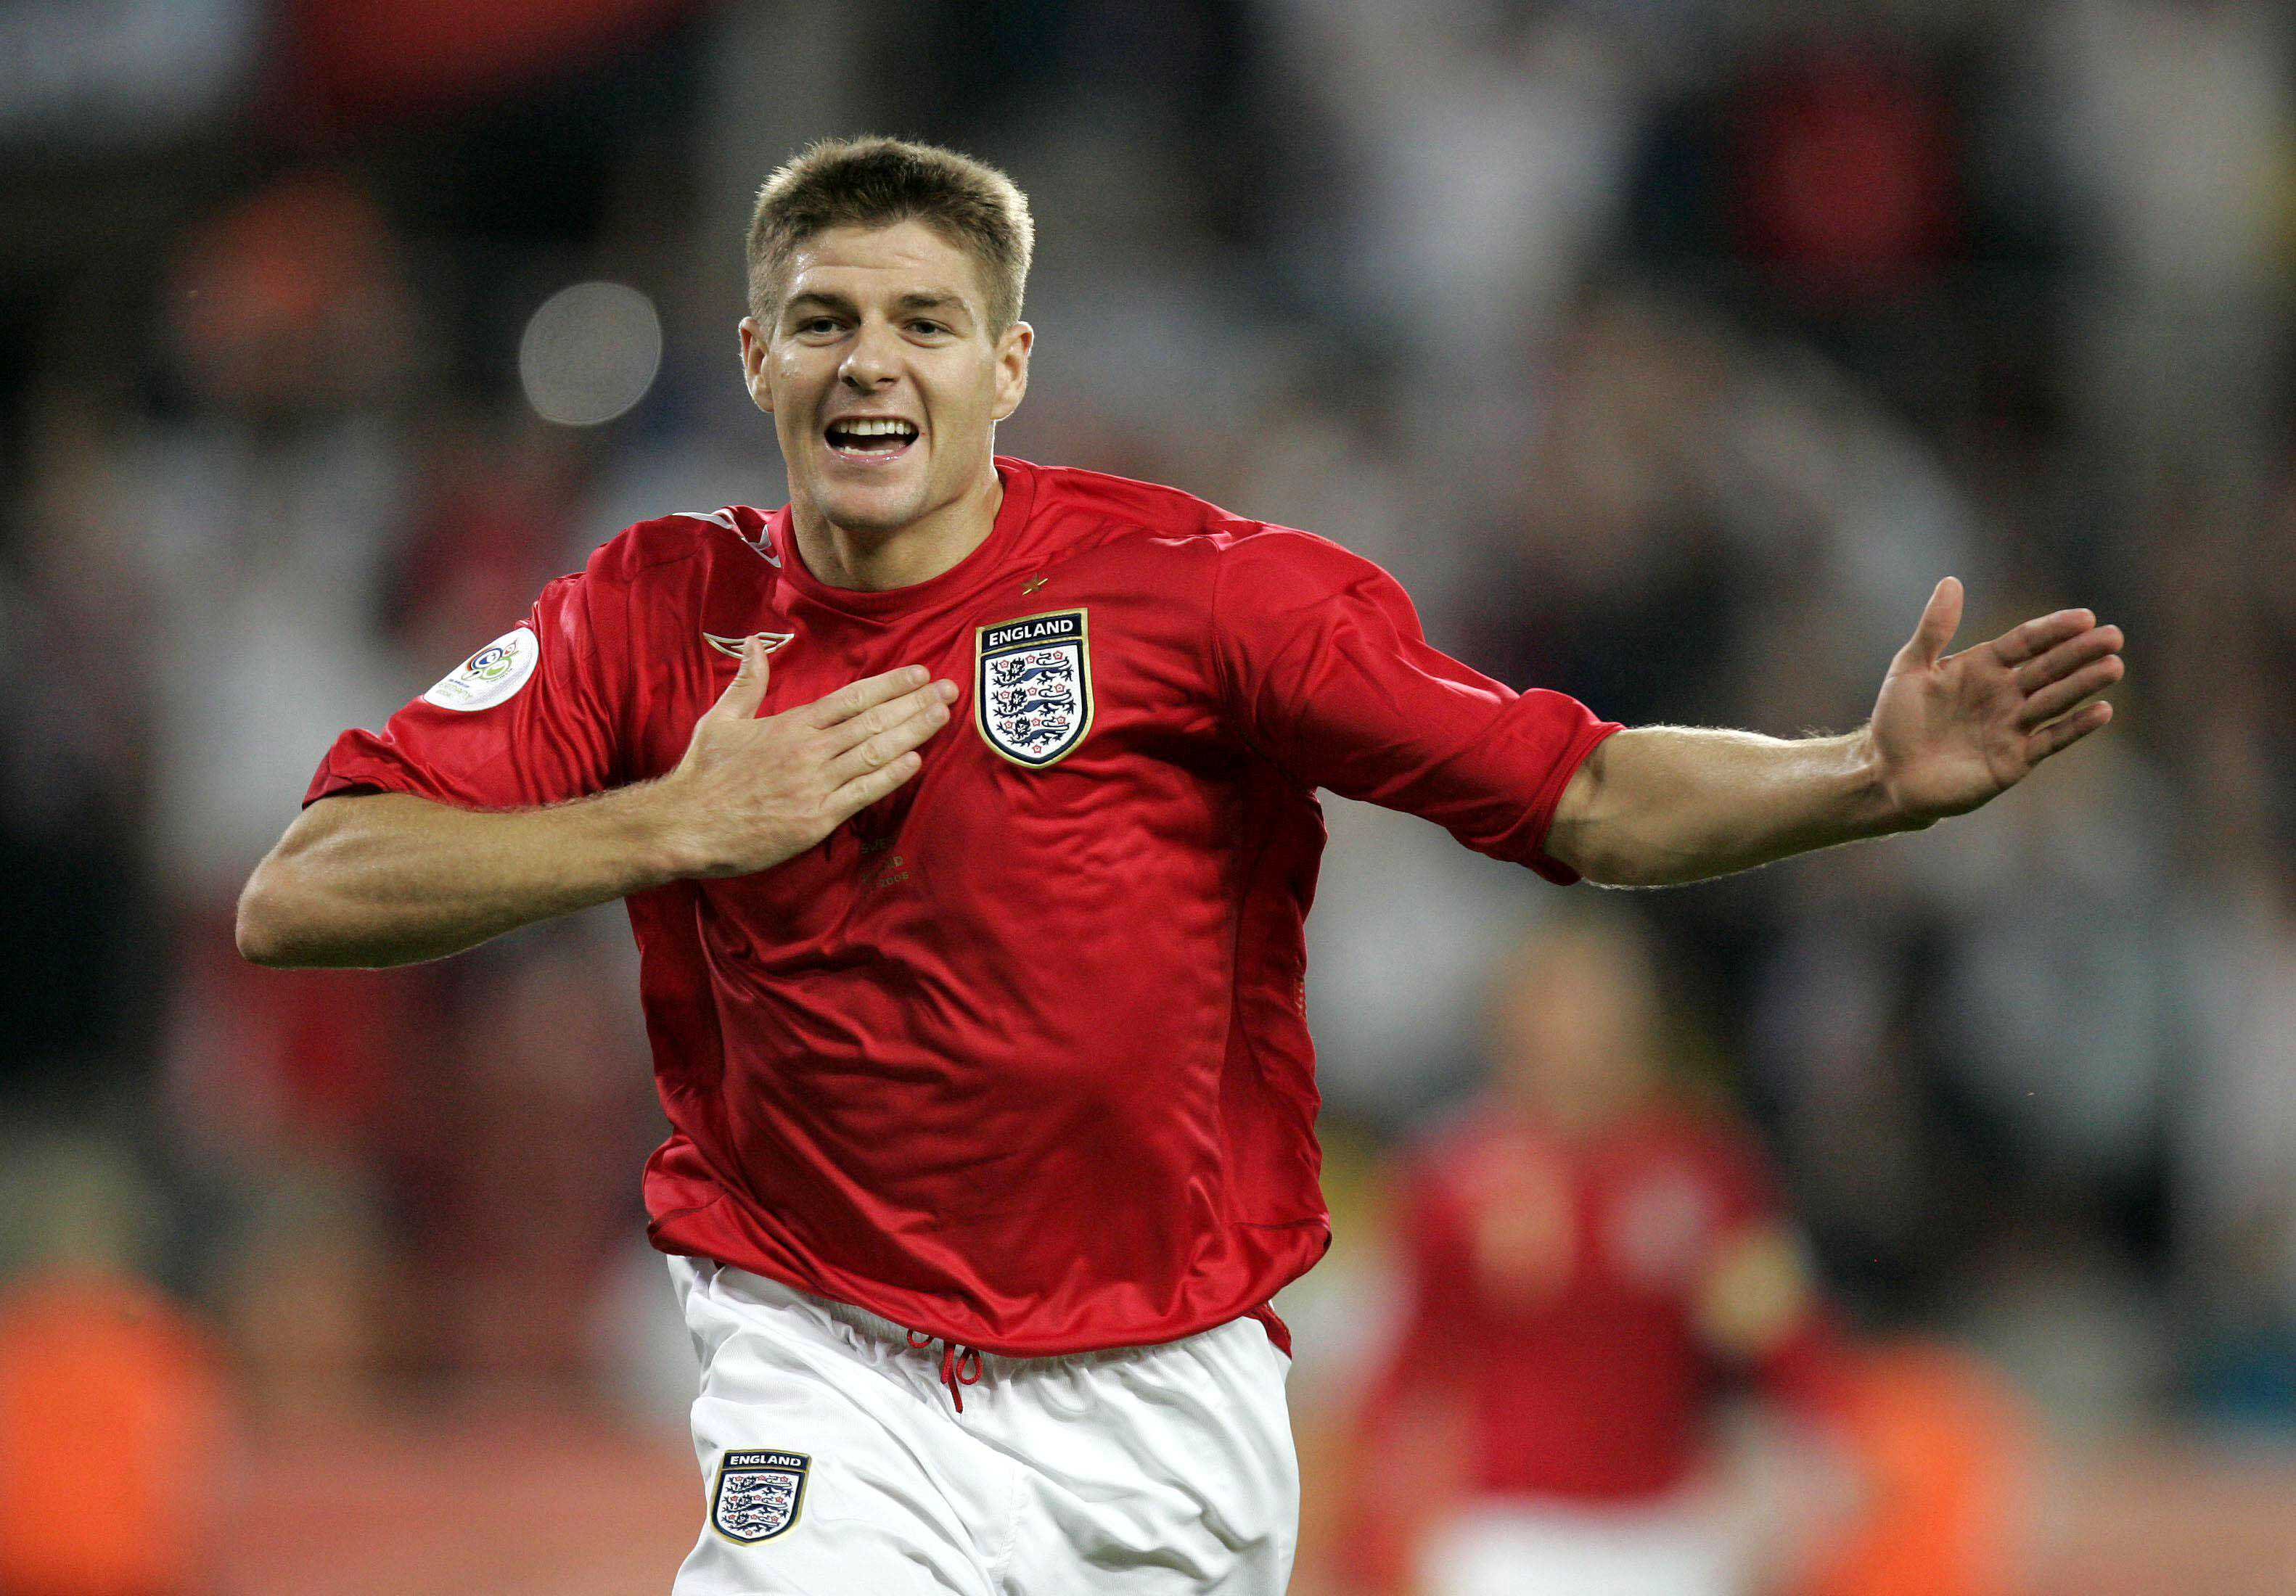 Steven Gerrard celebrates his and England's second goal during Group B action in the 2006 FIFA World Cup in Cologne, Germany, Tuesday, June 20, 2006. England tied Sweden 2-2. (Stuart Robinson/Express Syndication/KRT)